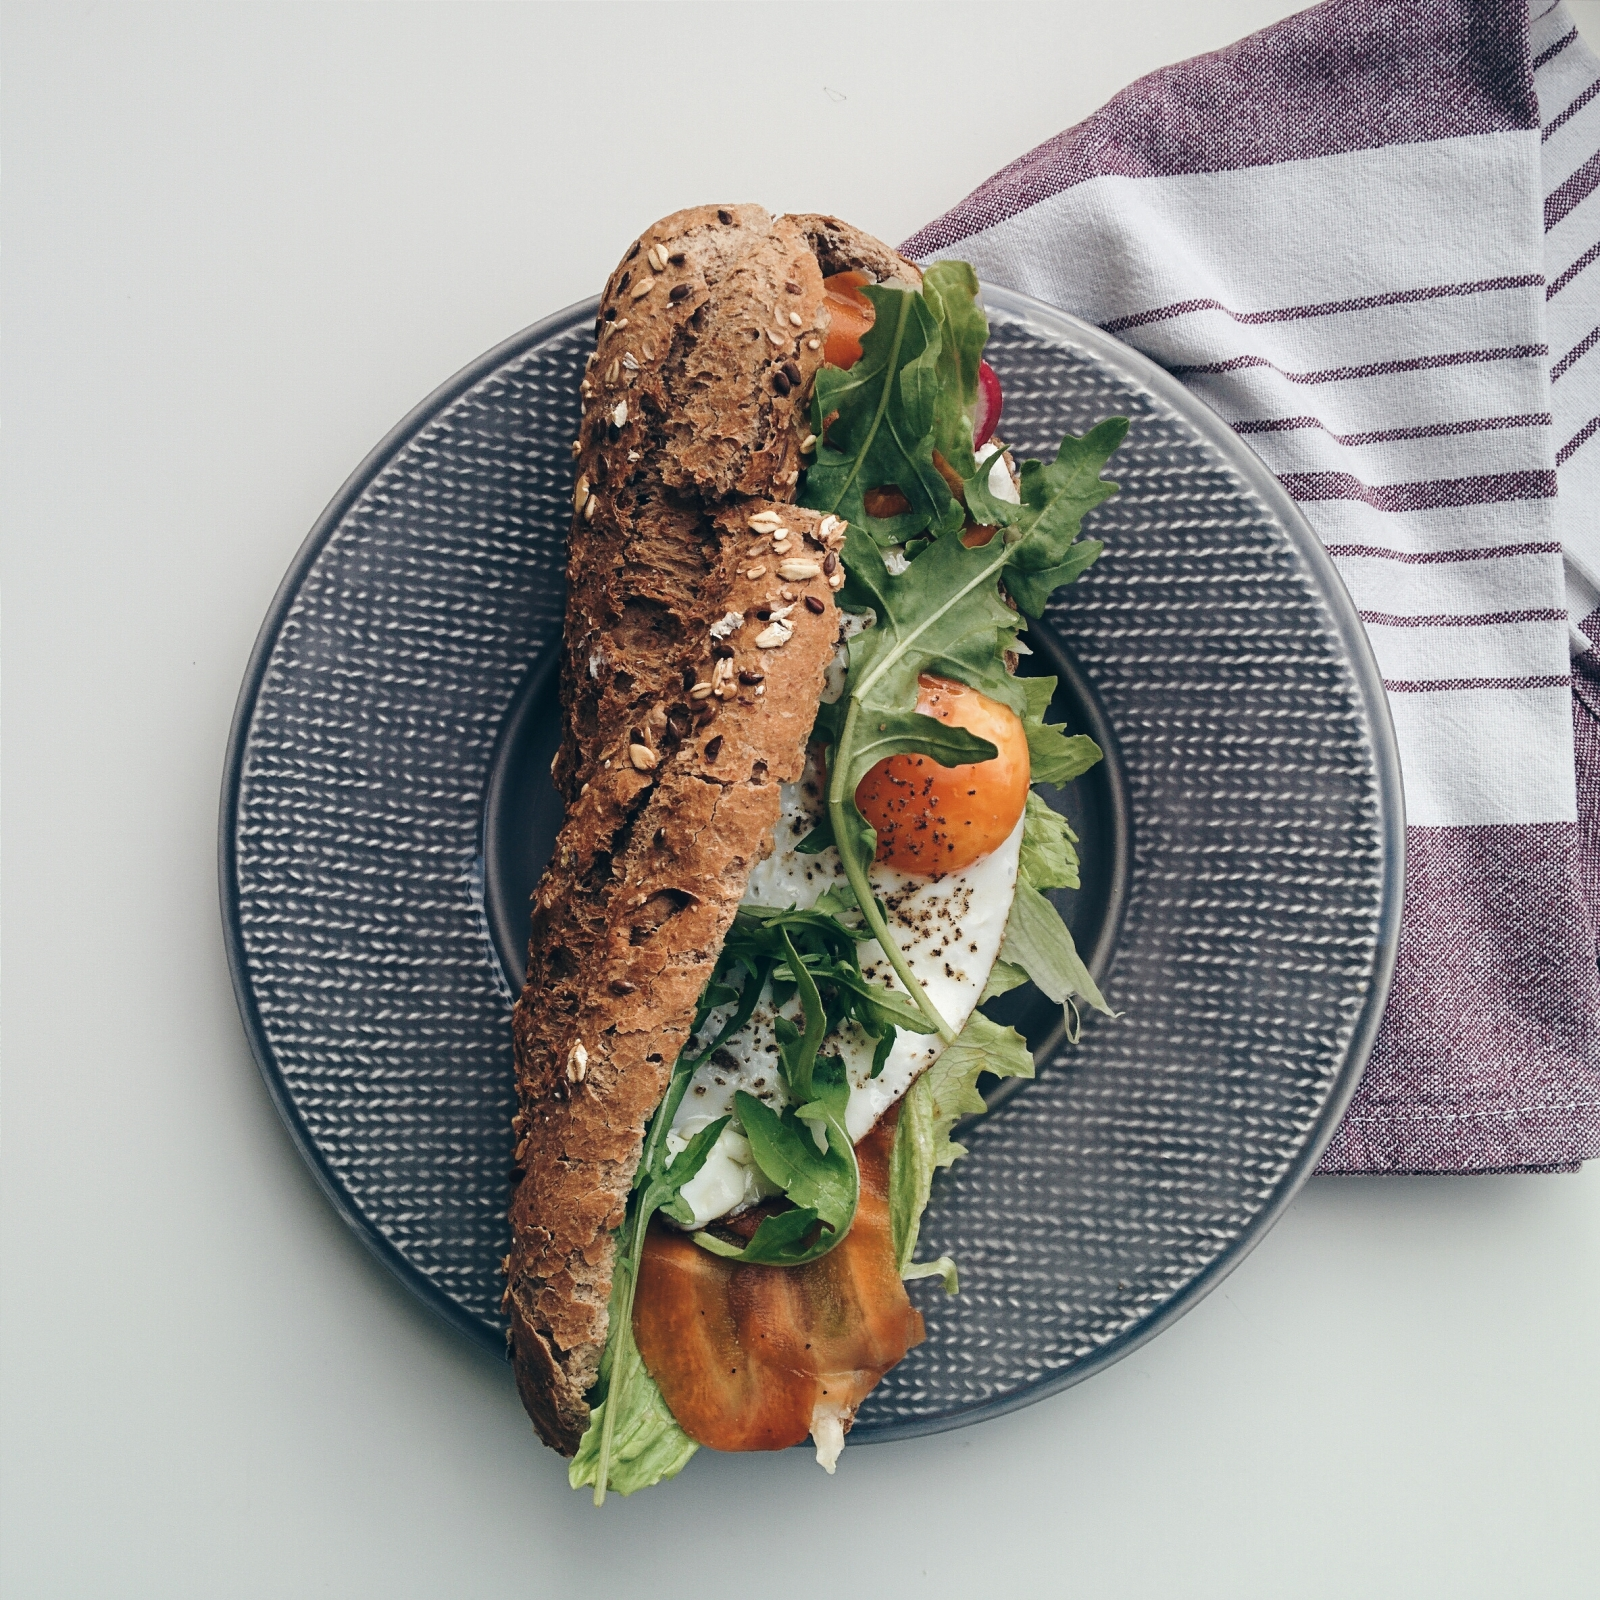 foodiesfeed-com_homemade-baguette-original